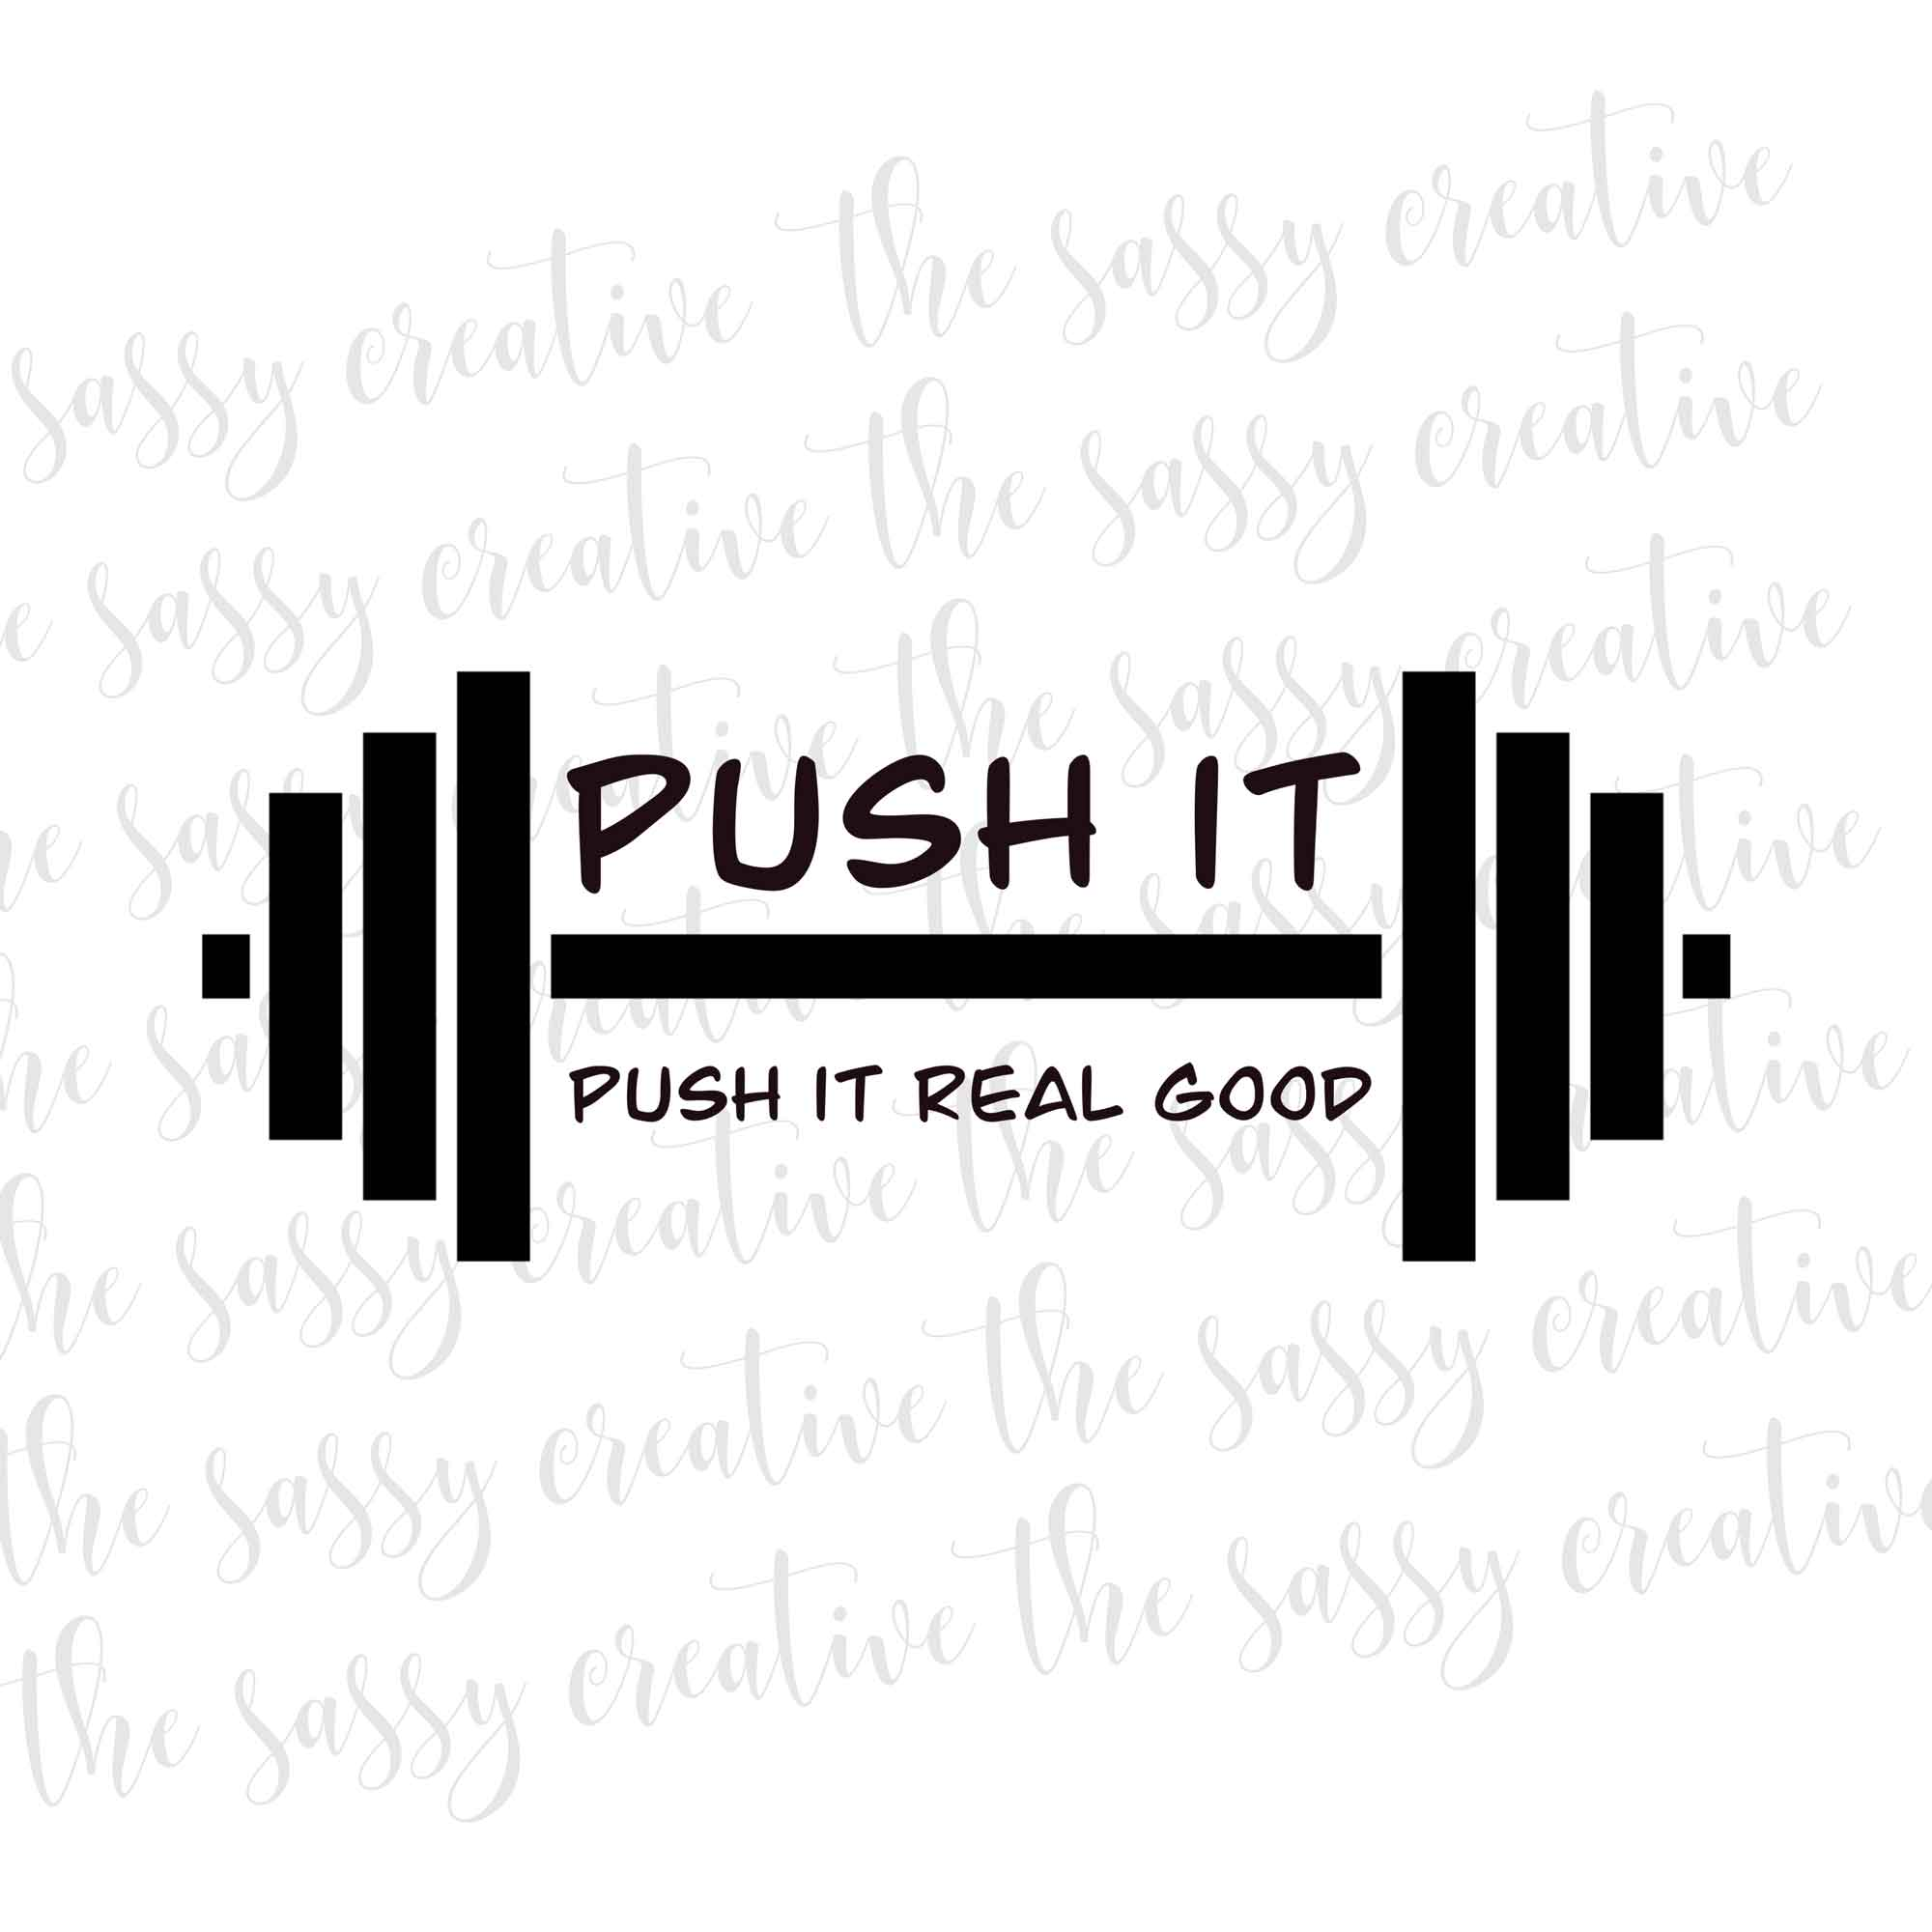 pushitrealgoodcover